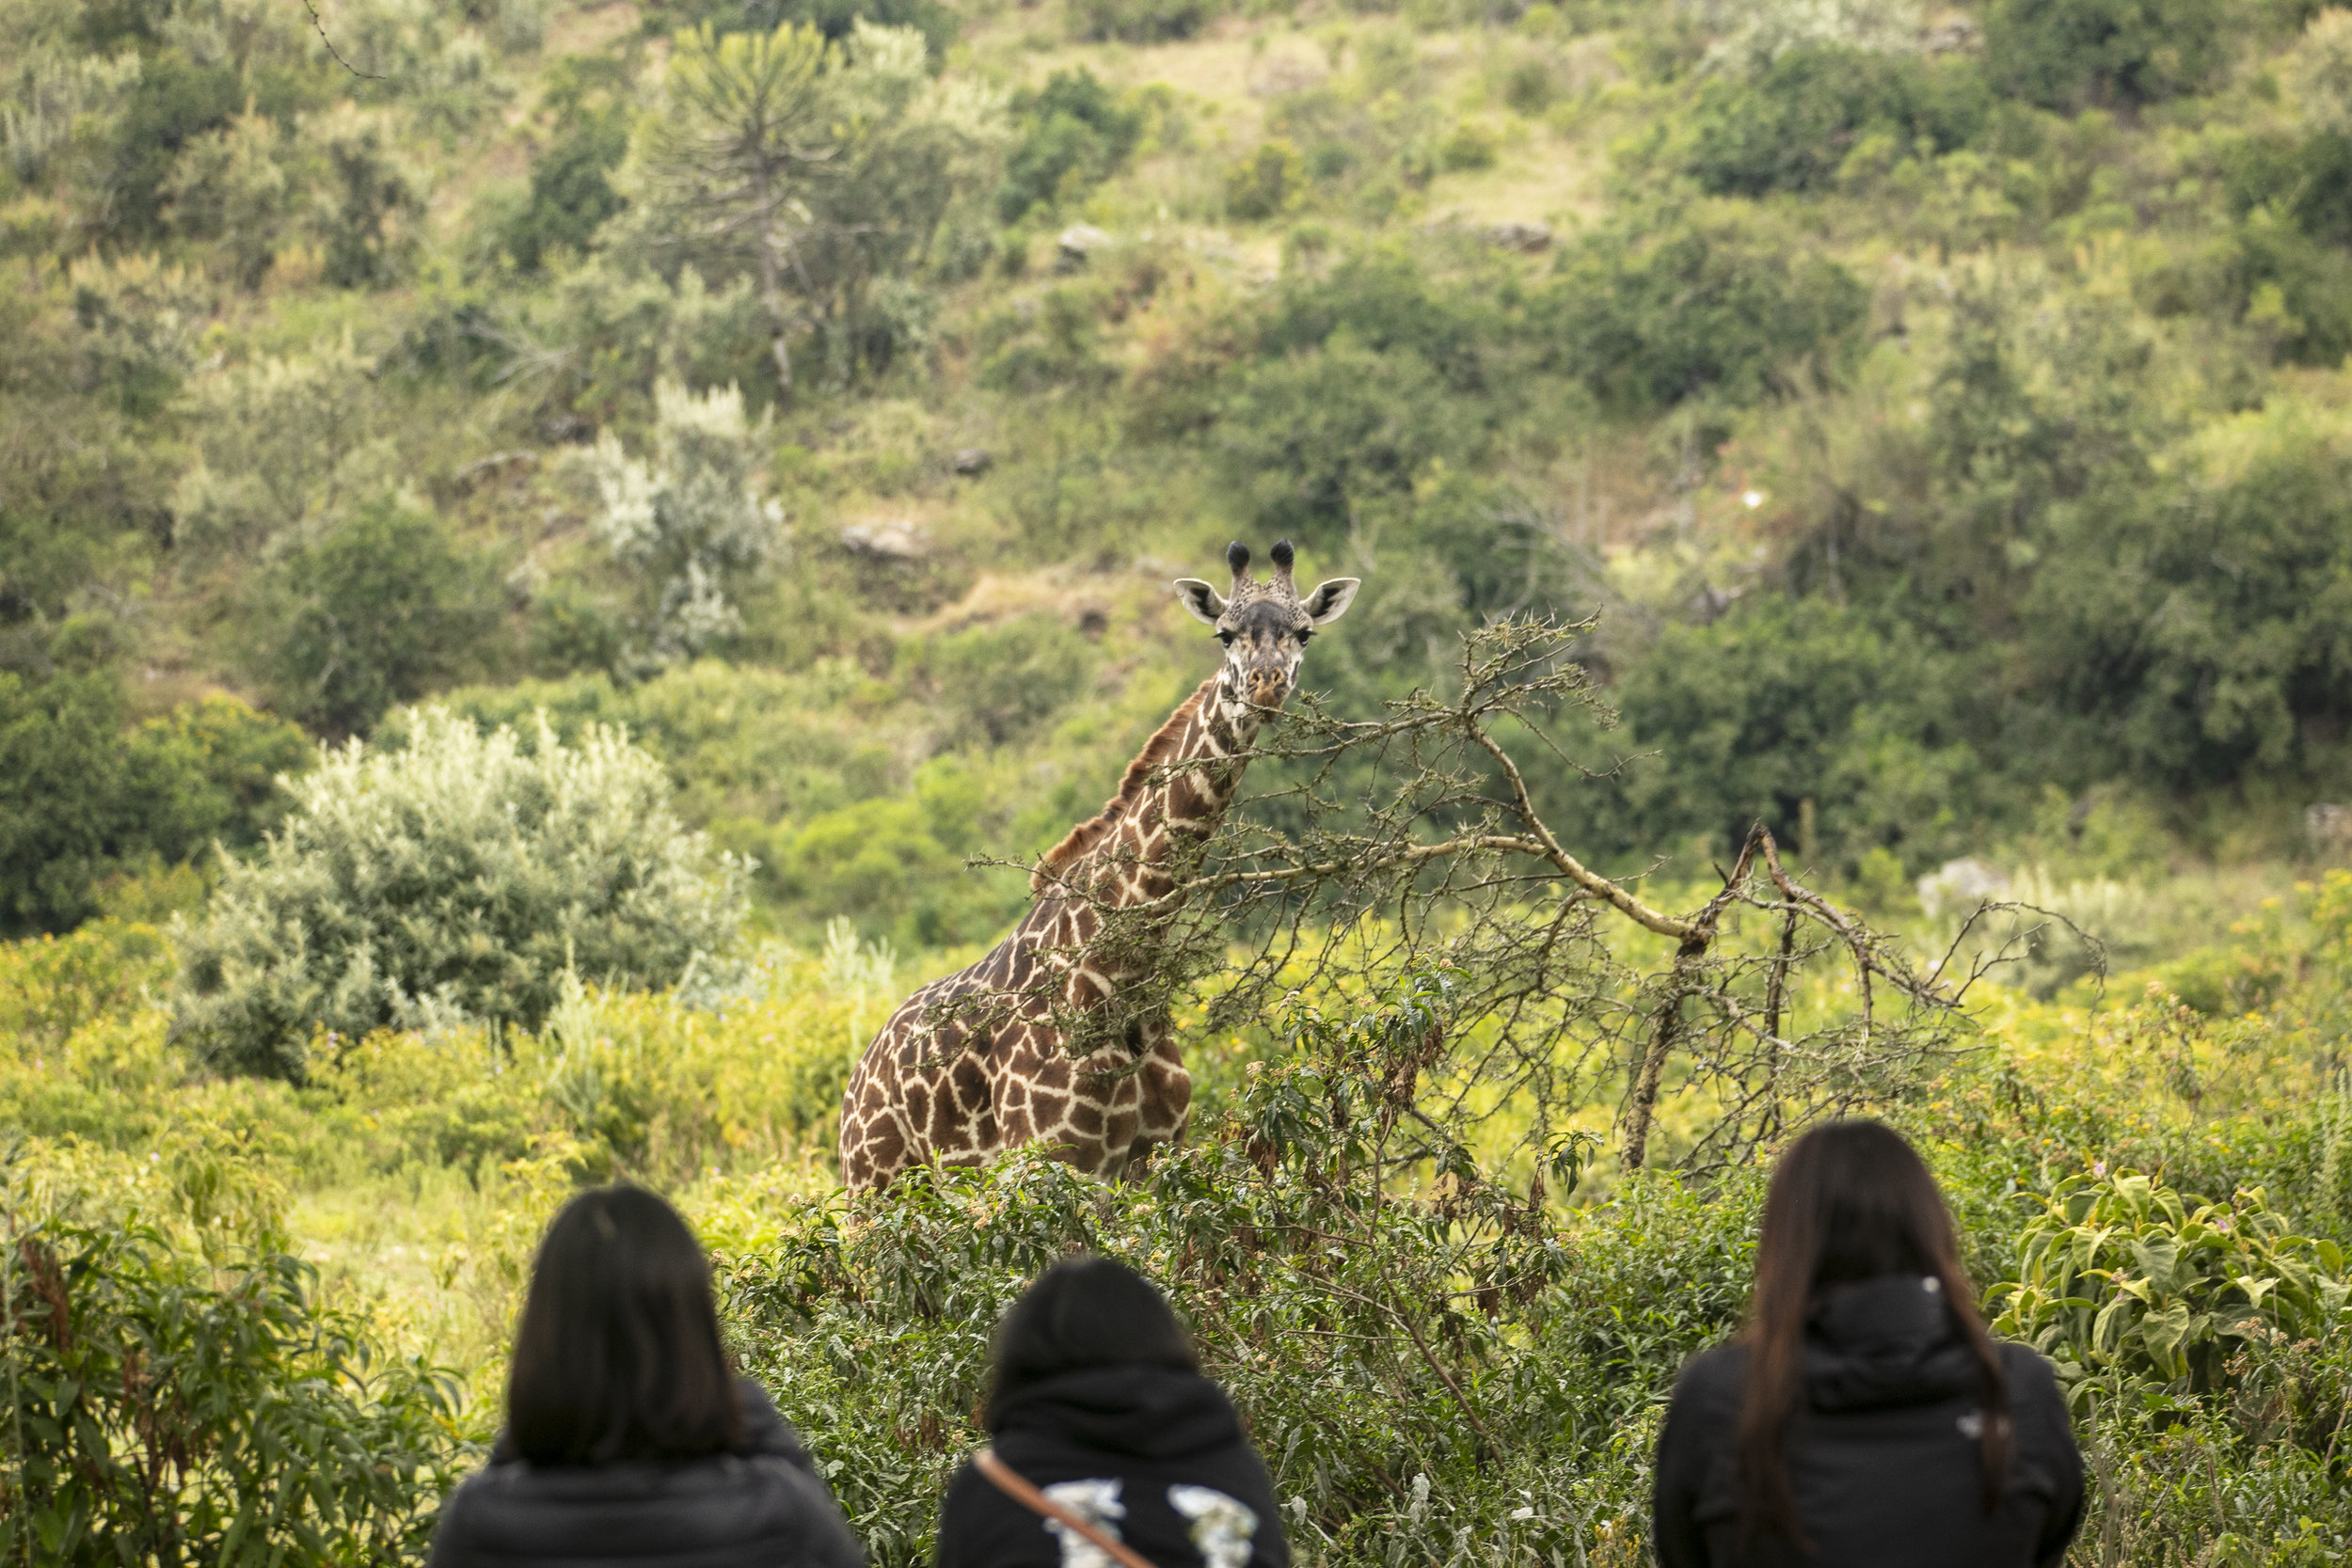 African Adventure - 21 July '18 - Lake Naivasha to Crater Lake Game Sanctuary - 008.JPG